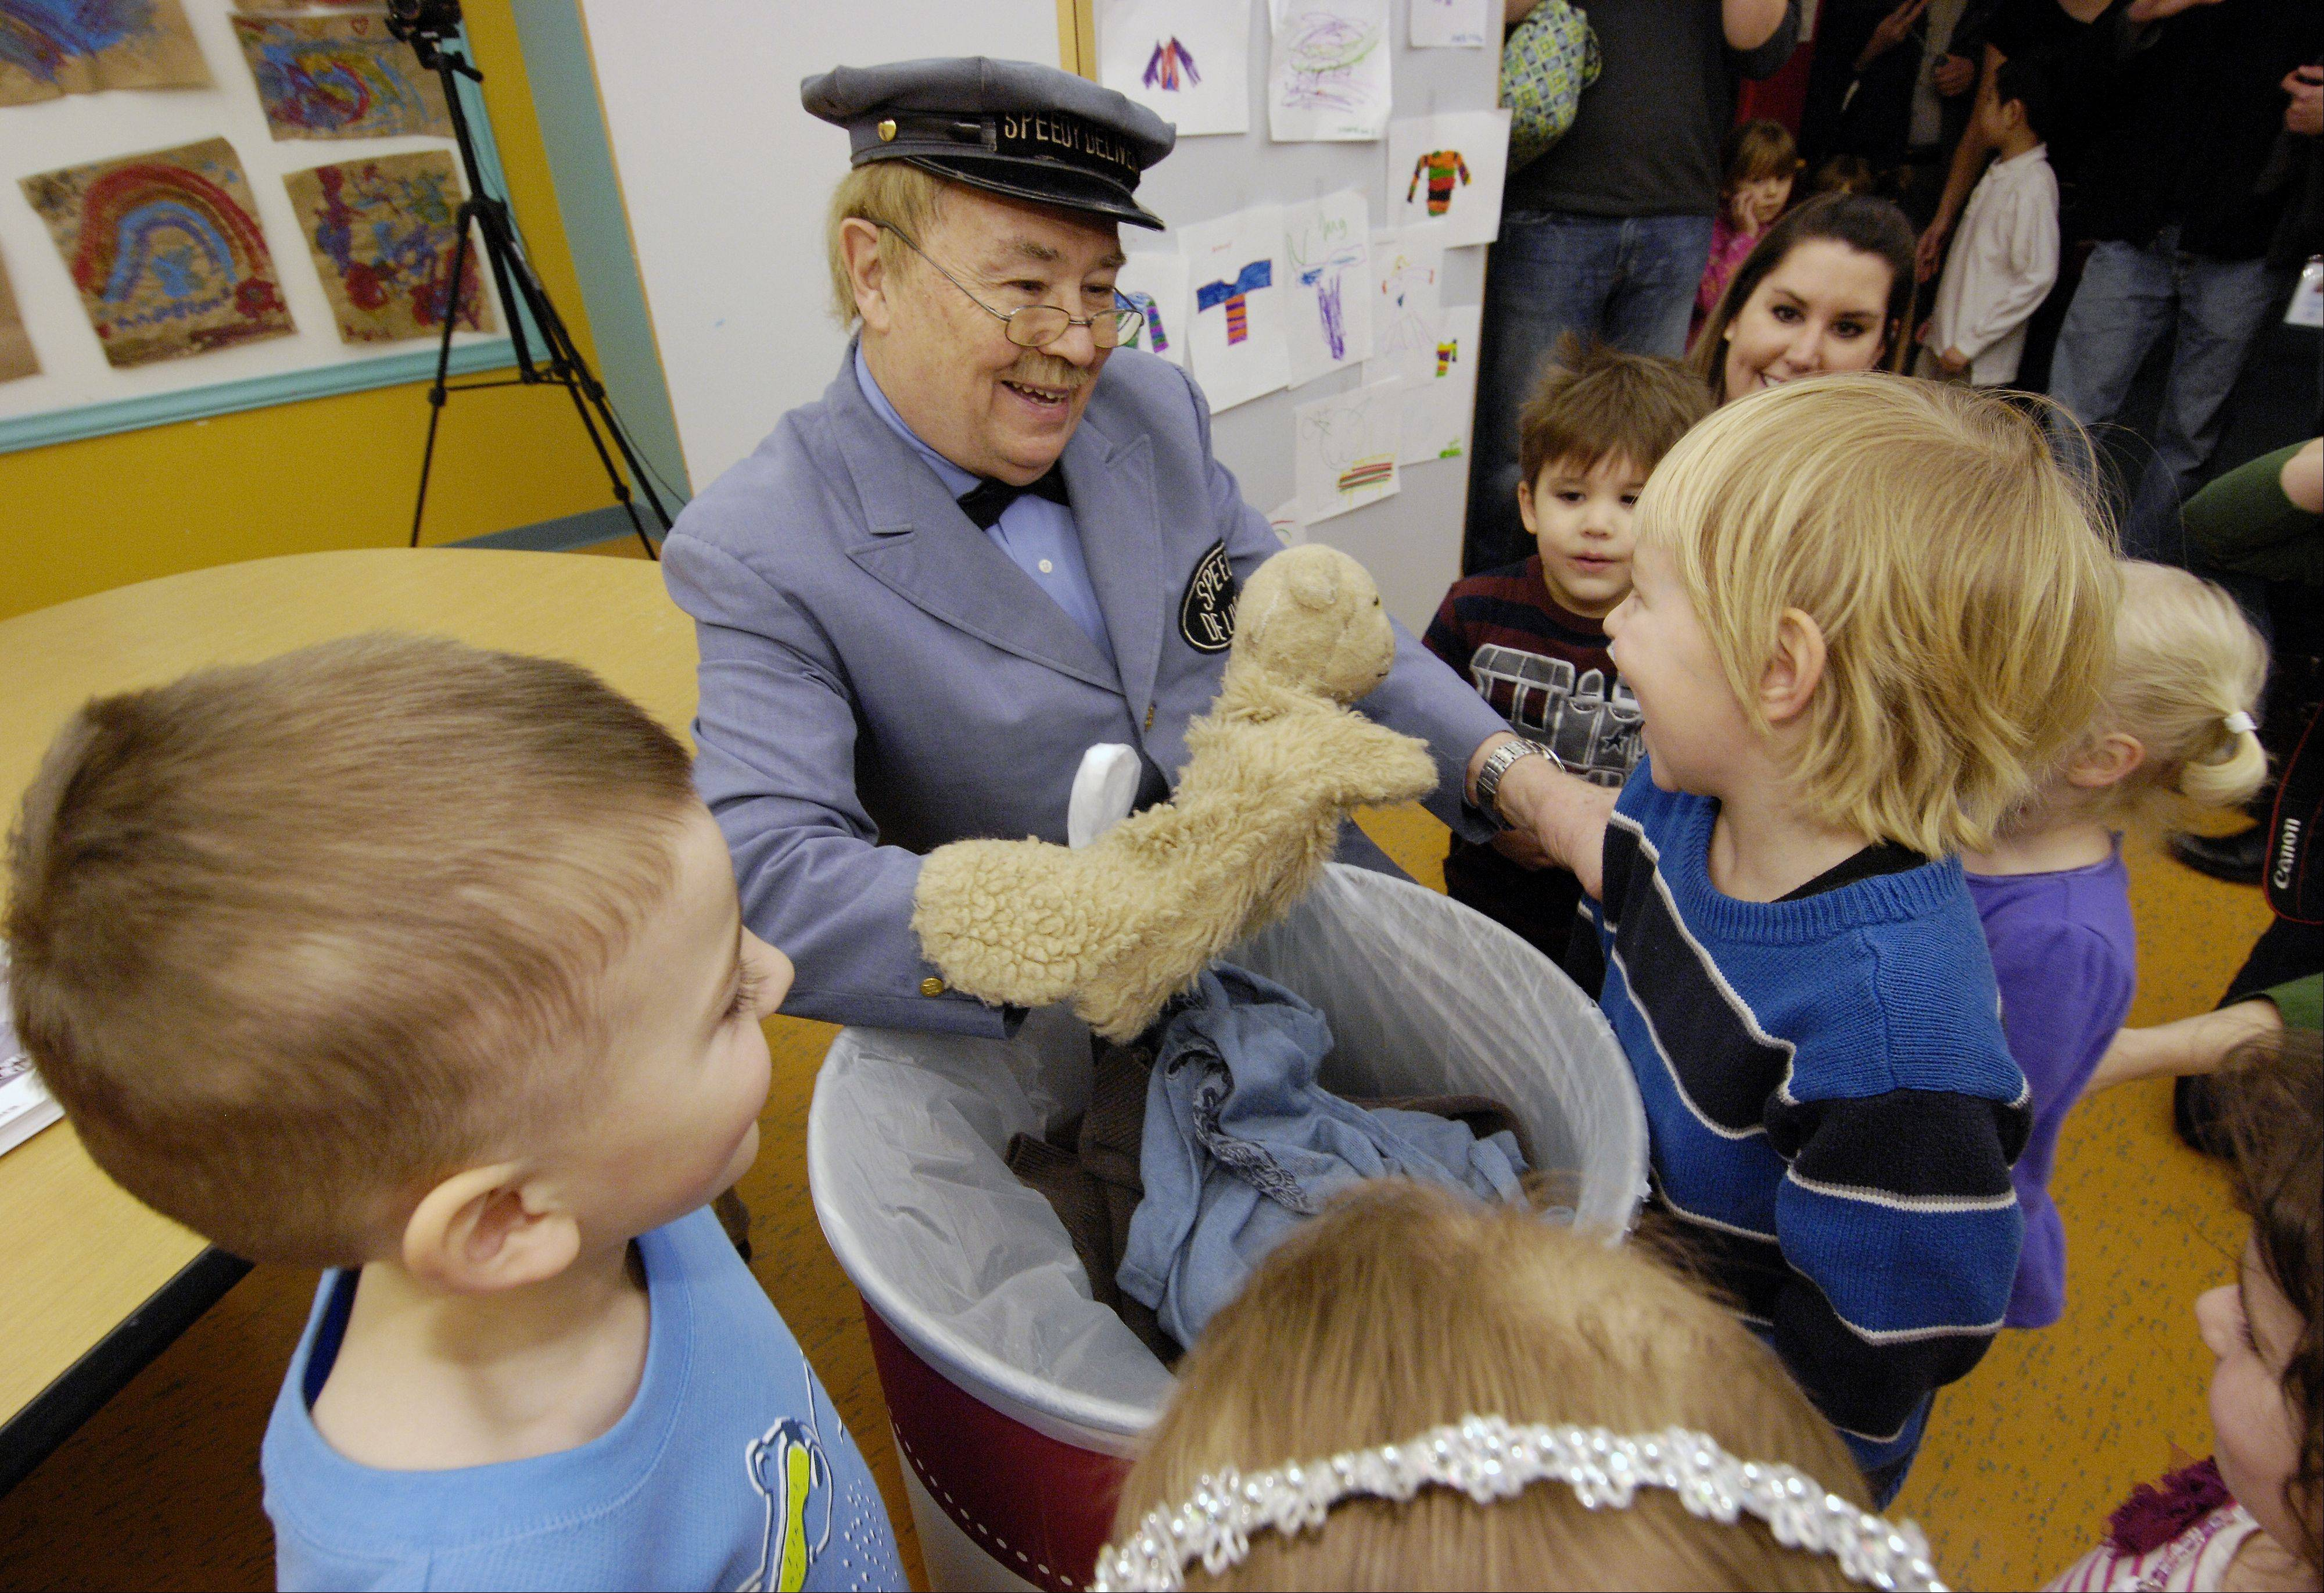 "David Newell, ""Mr. McFeely"" the Speedy Delivery man from the children's TV show ""Mr. Rogers' Neighborhood"" with one of the original puppets ""Daniel Tiger"" visits with children at the DuPage Children's Museum to kick of a sweater drive, Sunday."